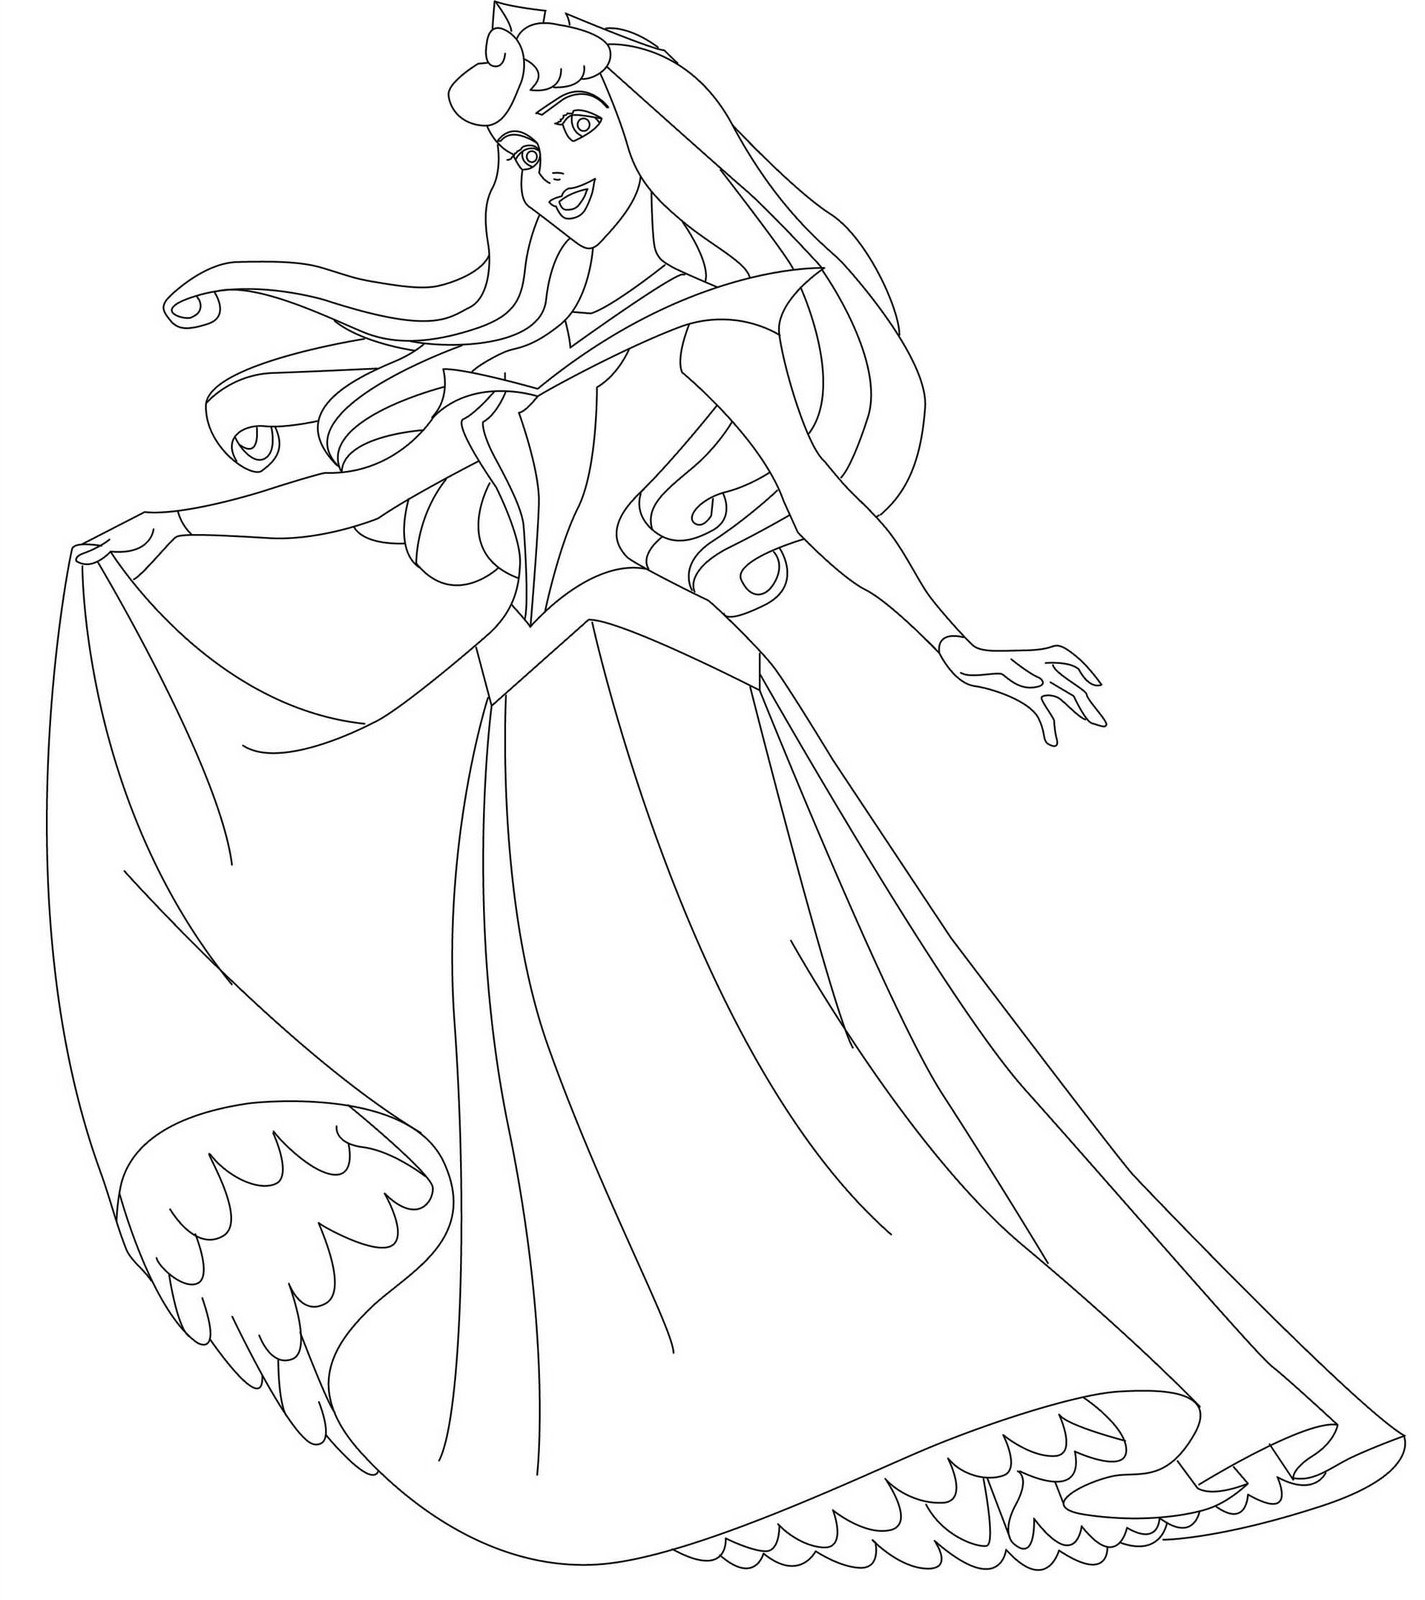 1425x1600 Sleeping Beauty With Prince Coloring Pages For Kids Inspirational